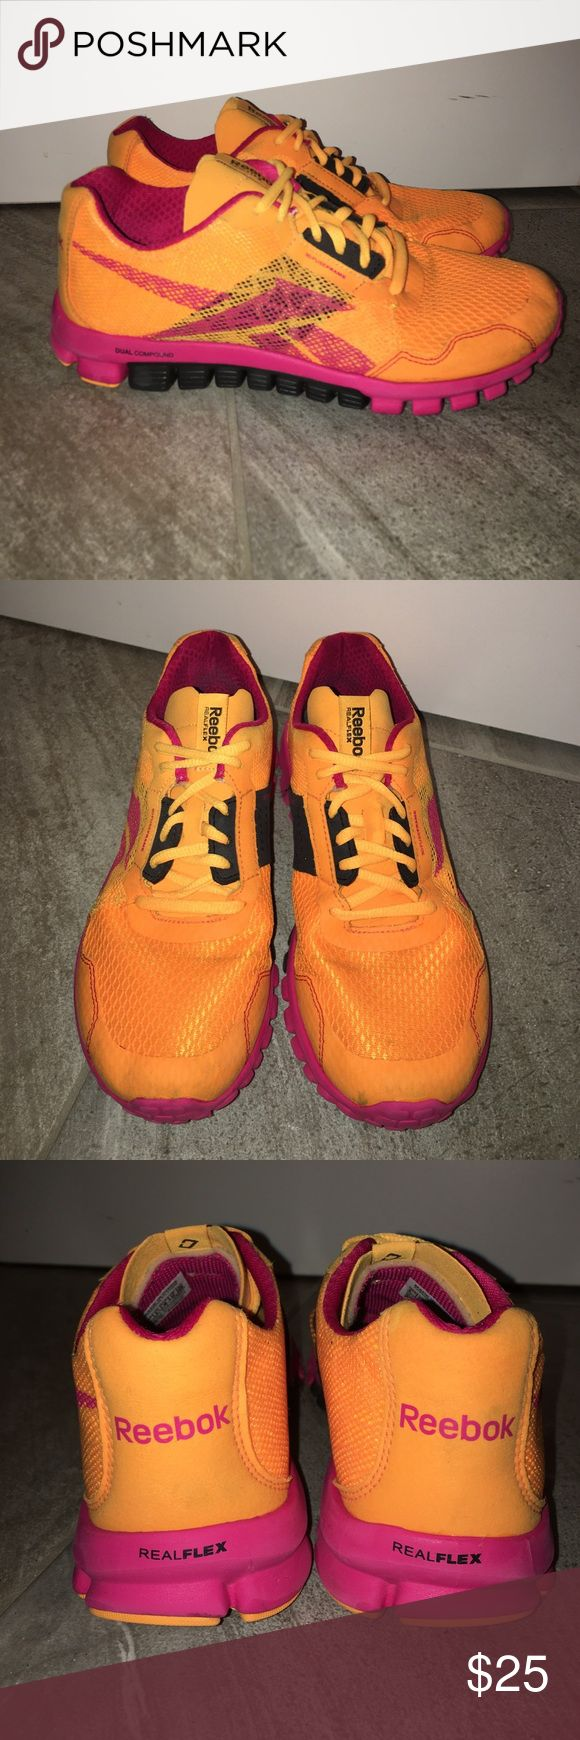 REEBOK REALFLEX REEBOK REALFLEX Sz 6 women's. Super cute! Minor stains on shoe, but overall good condition! bright orange w Pink Reebok Shoes Athletic Shoes